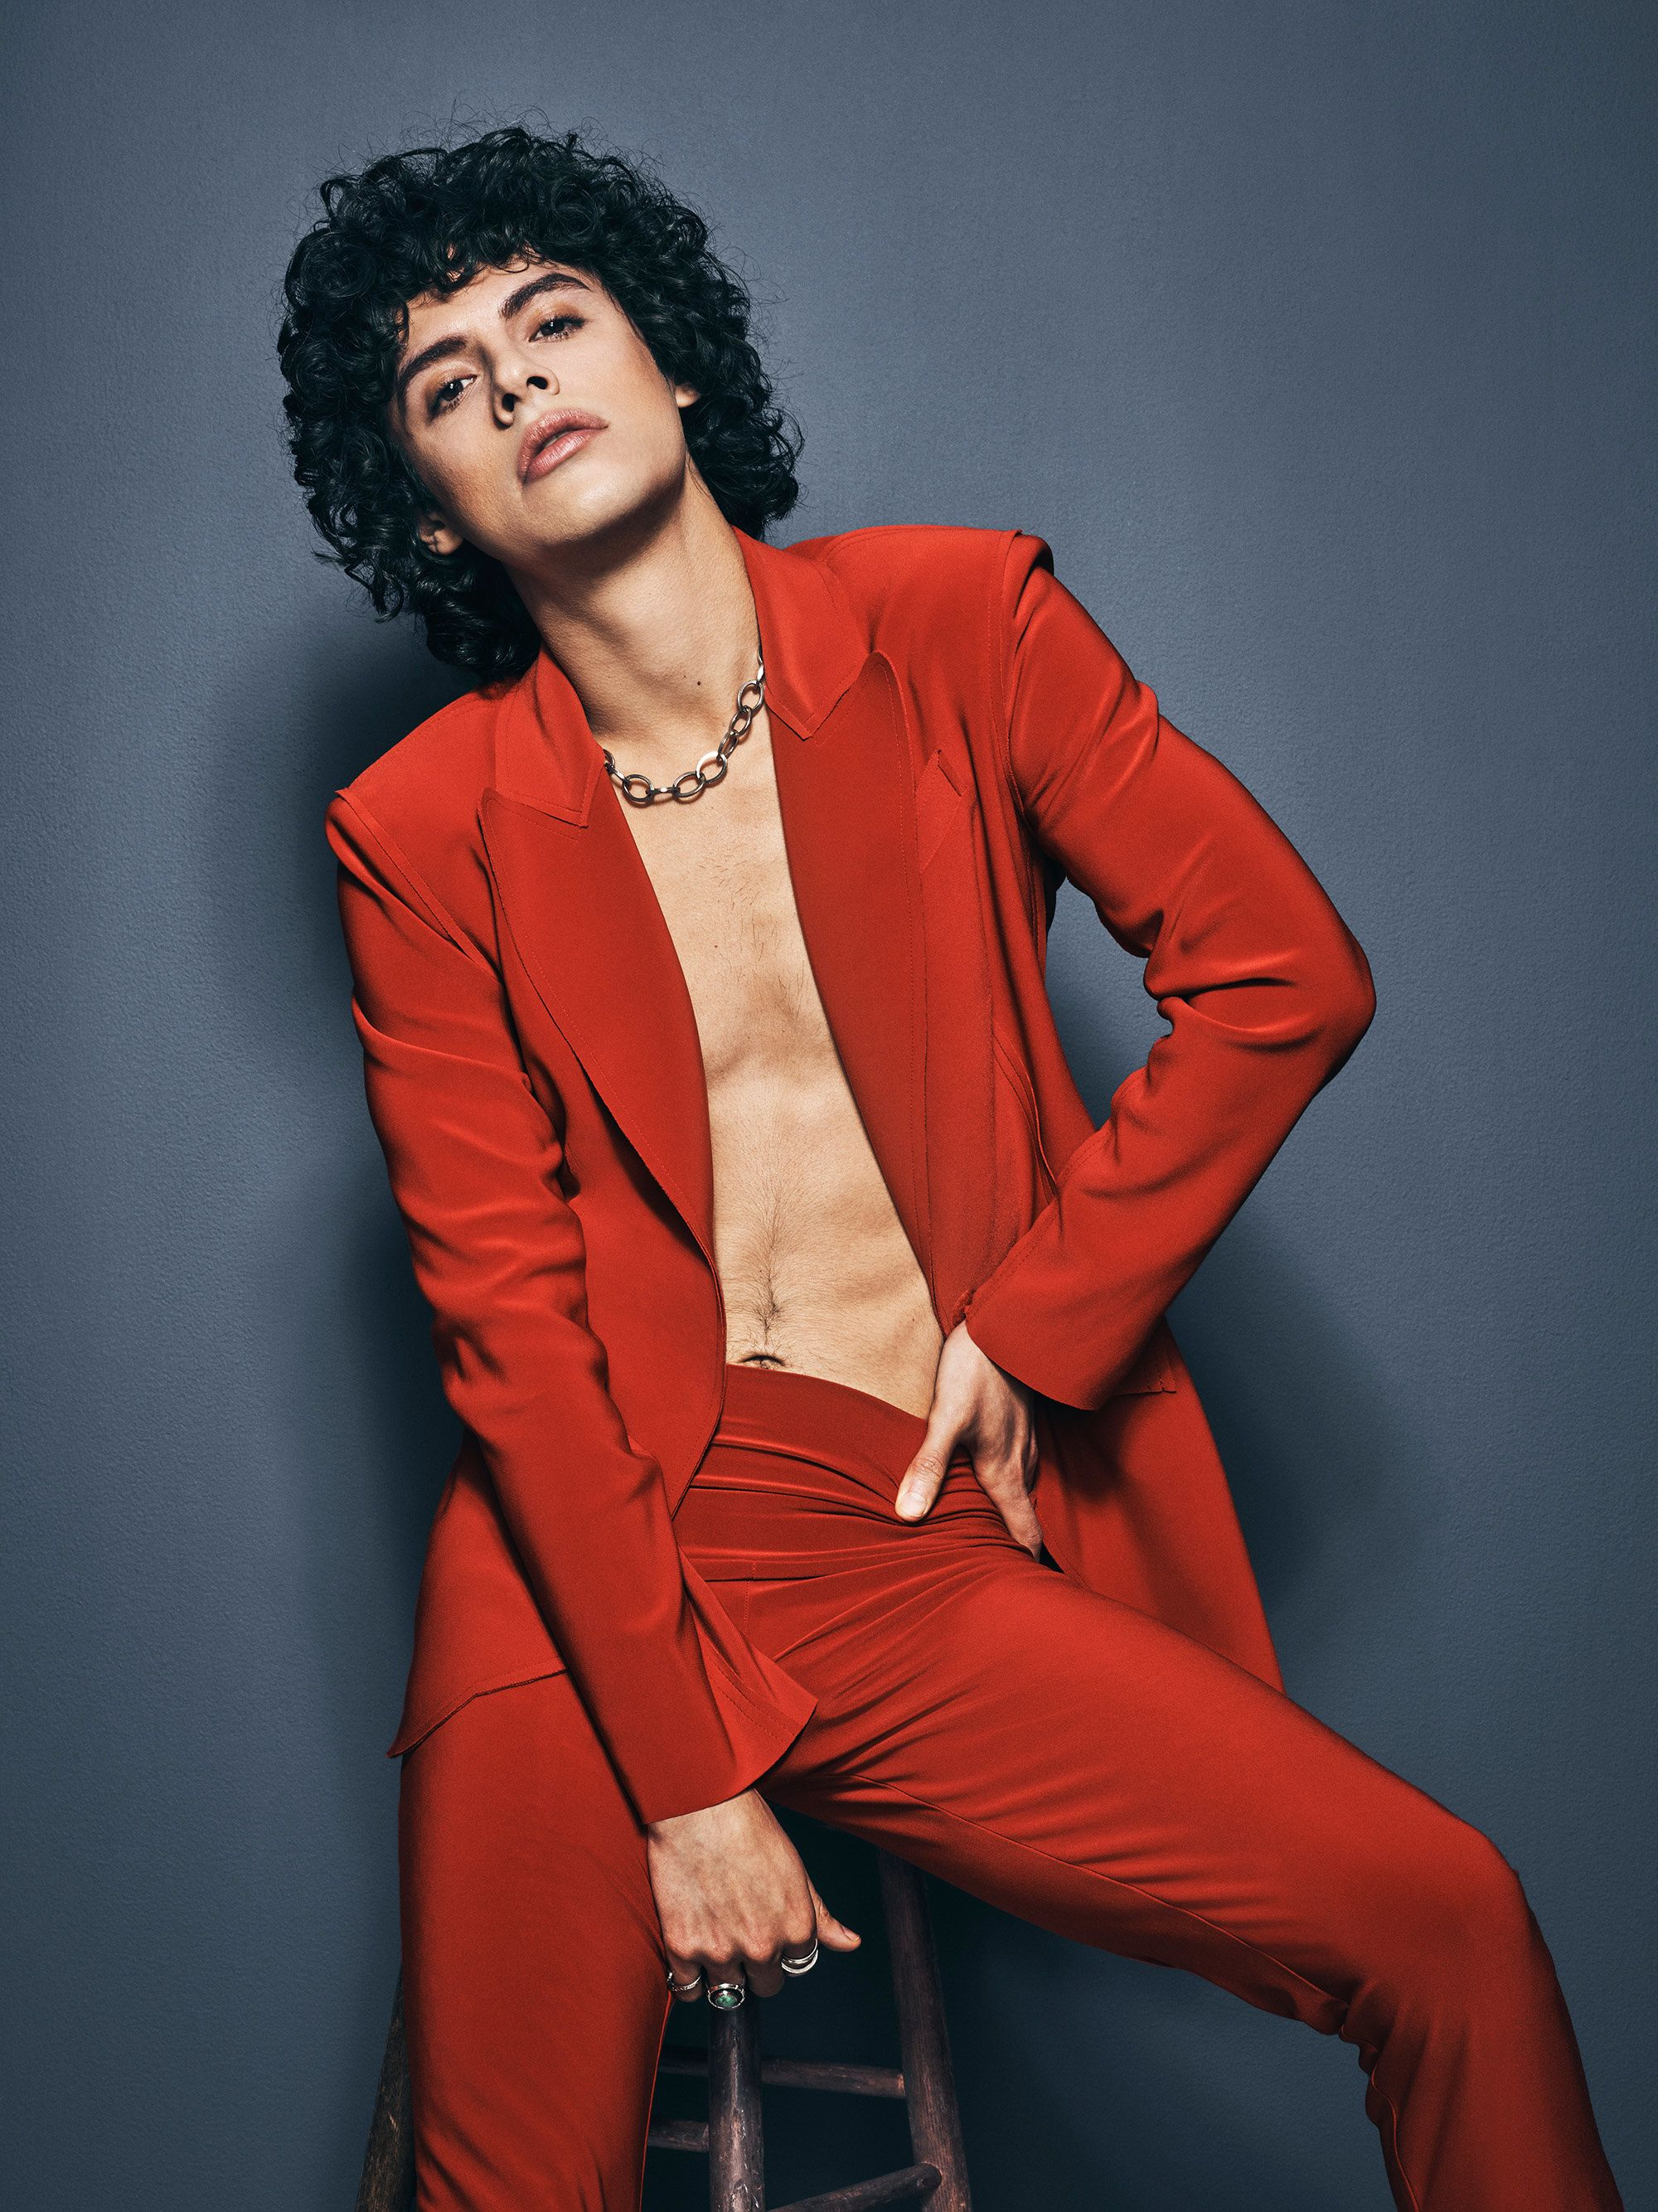 Jonny Beauchamp in a red suit with no shirt.